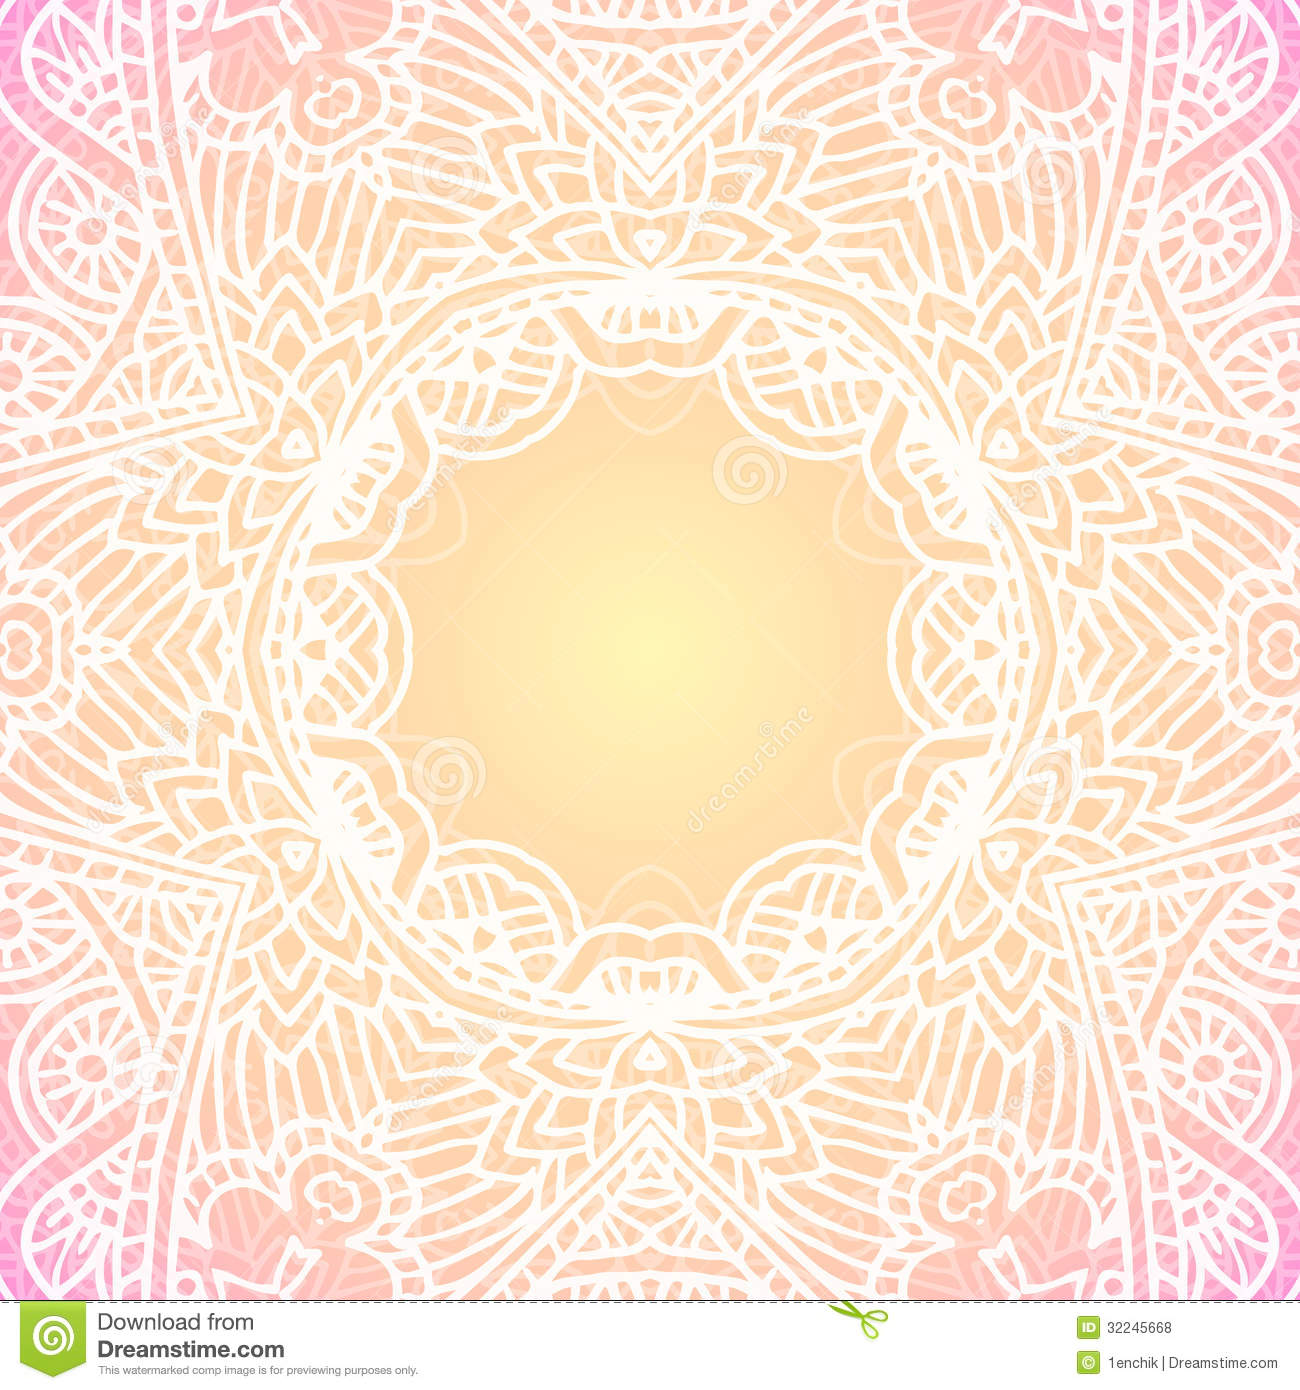 Ornate vintage vector background in mehndi style royalty free stock - Royalty Free Stock Photo Download Ornate Vintage Vector Background In Mehndi Style